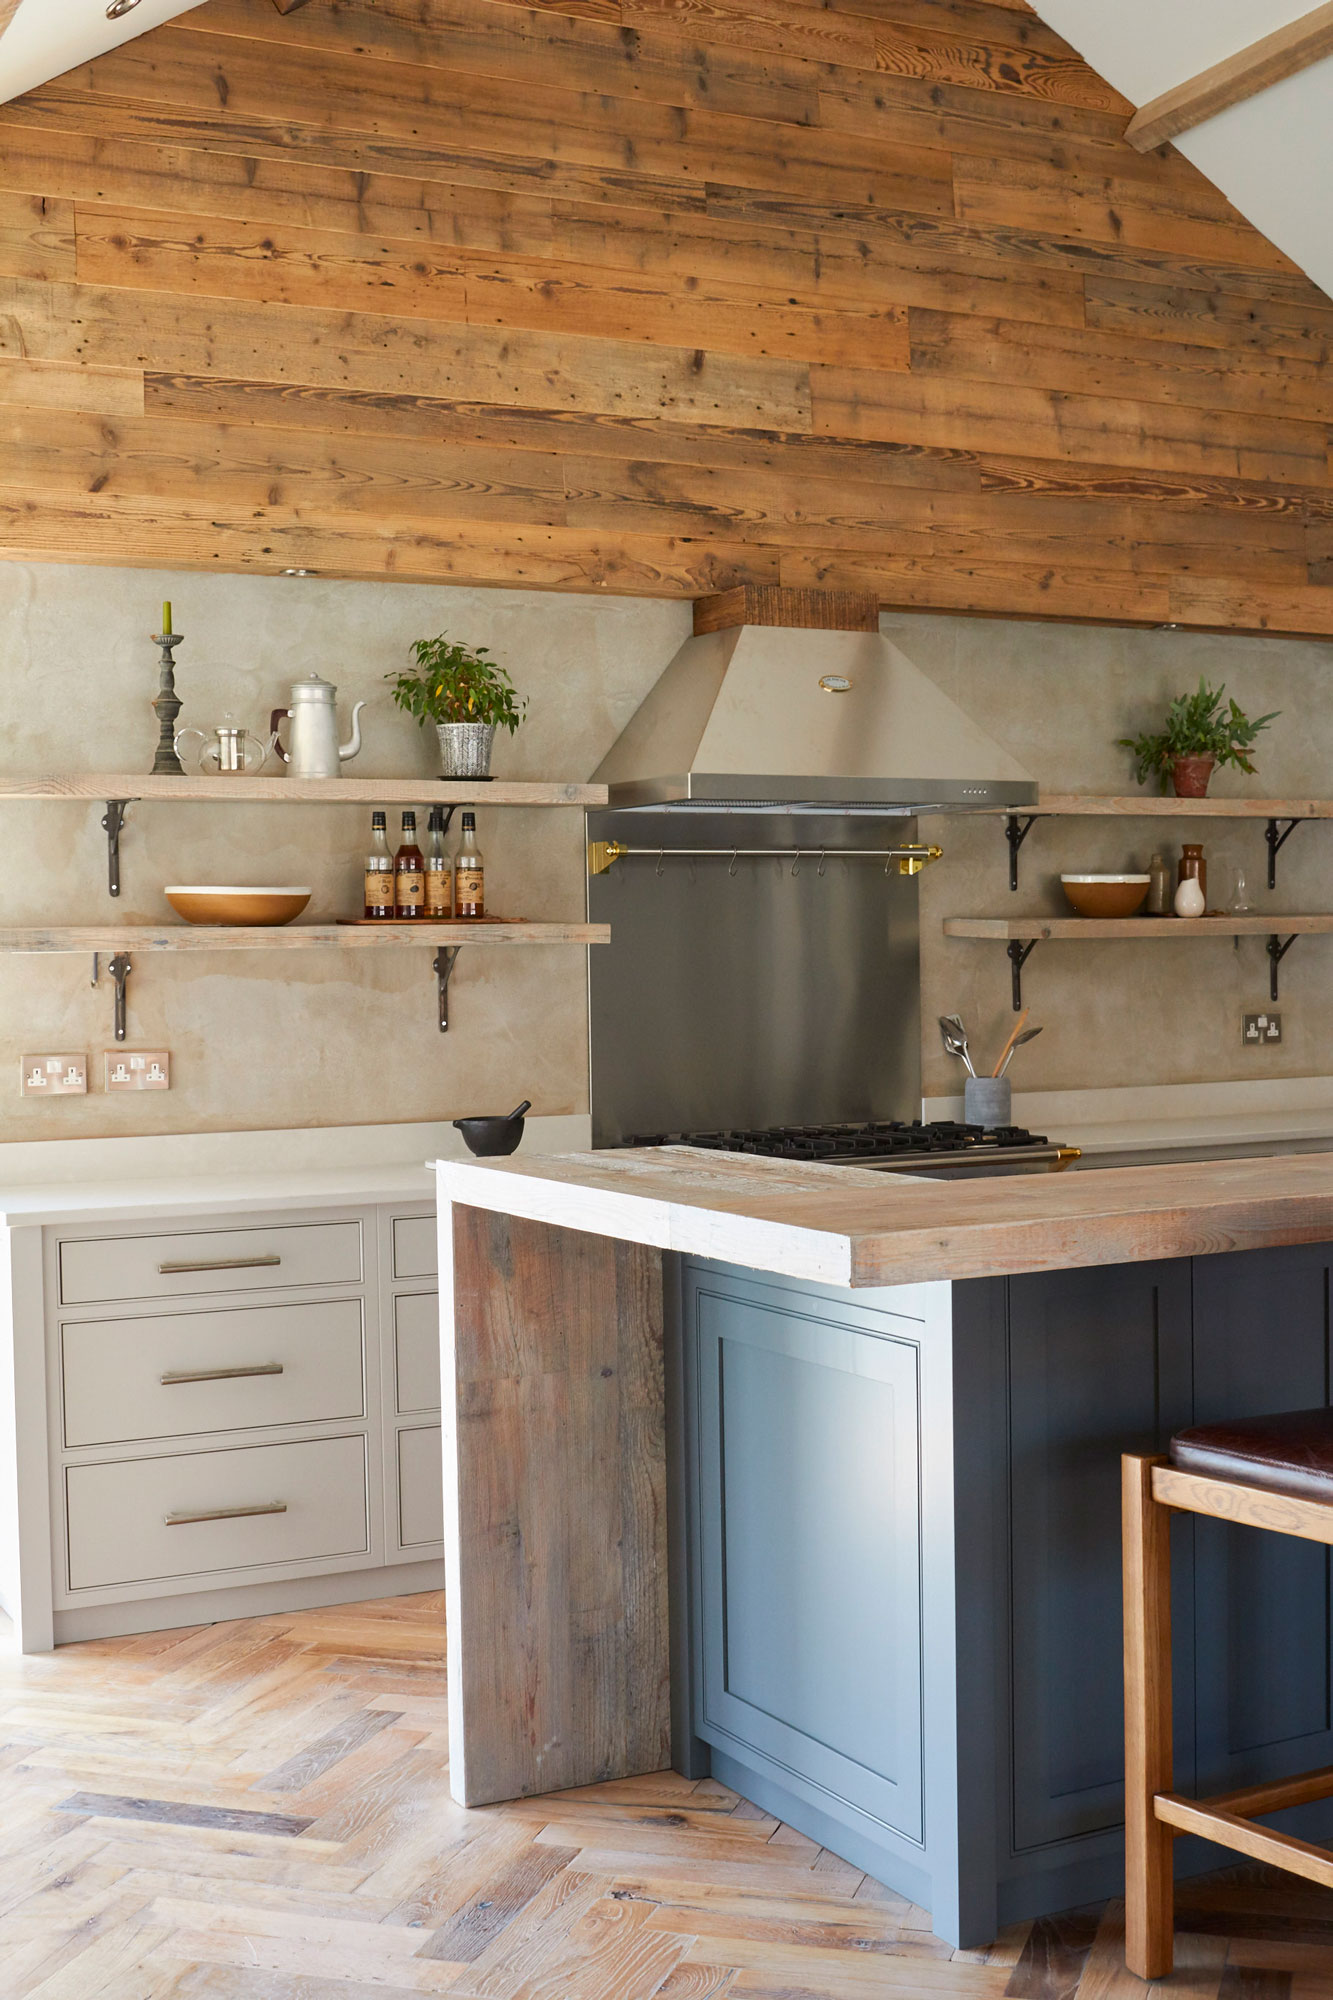 Painted kitchen with herringbone oak floor and cladded reclaimed wood wall